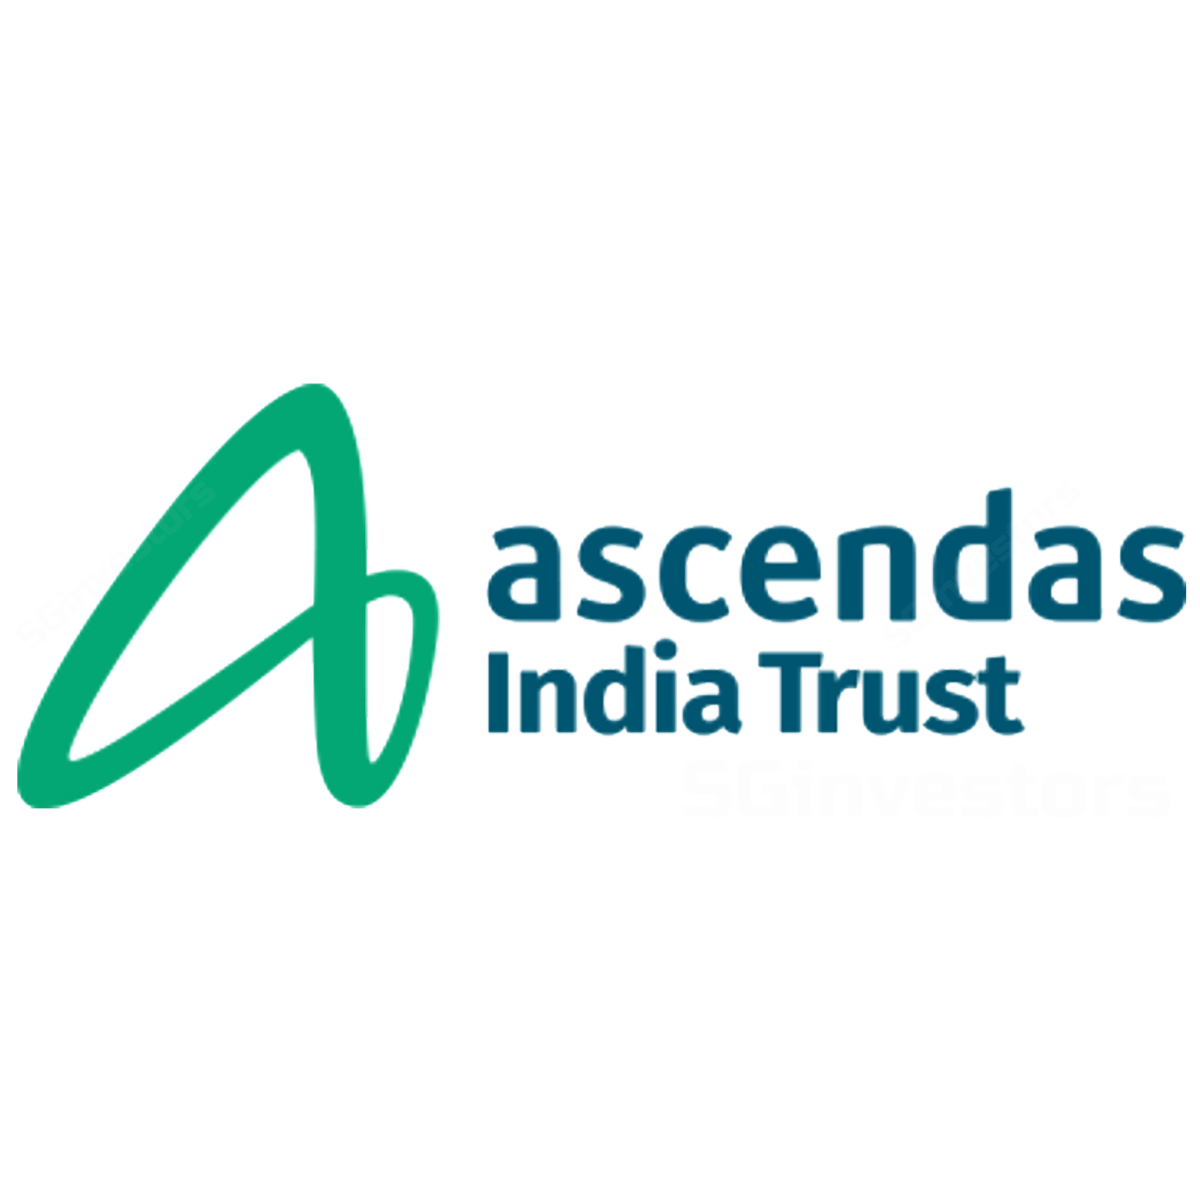 Ascendas India Trust - DBS Vickers 2018-06-25: The Need For Speed